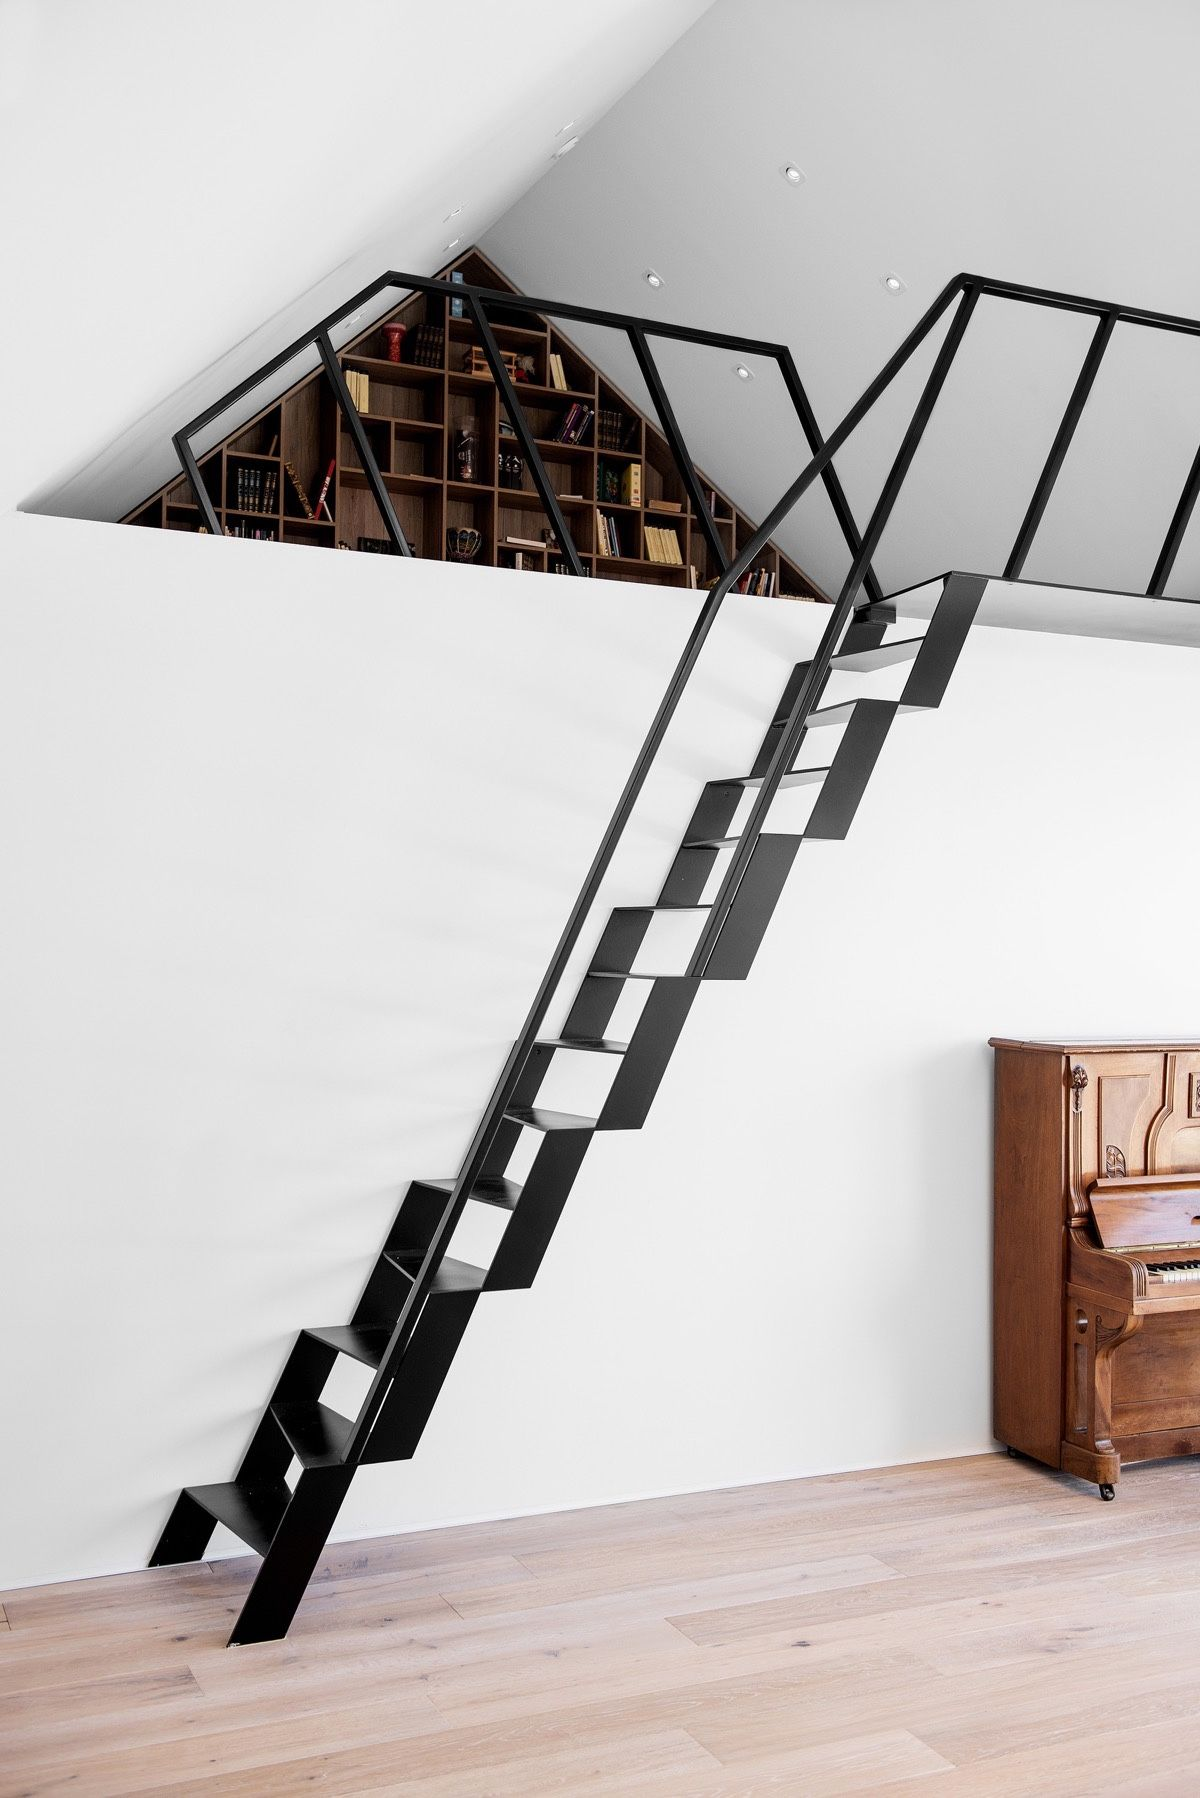 Custom open wall staircases are fast becoming a